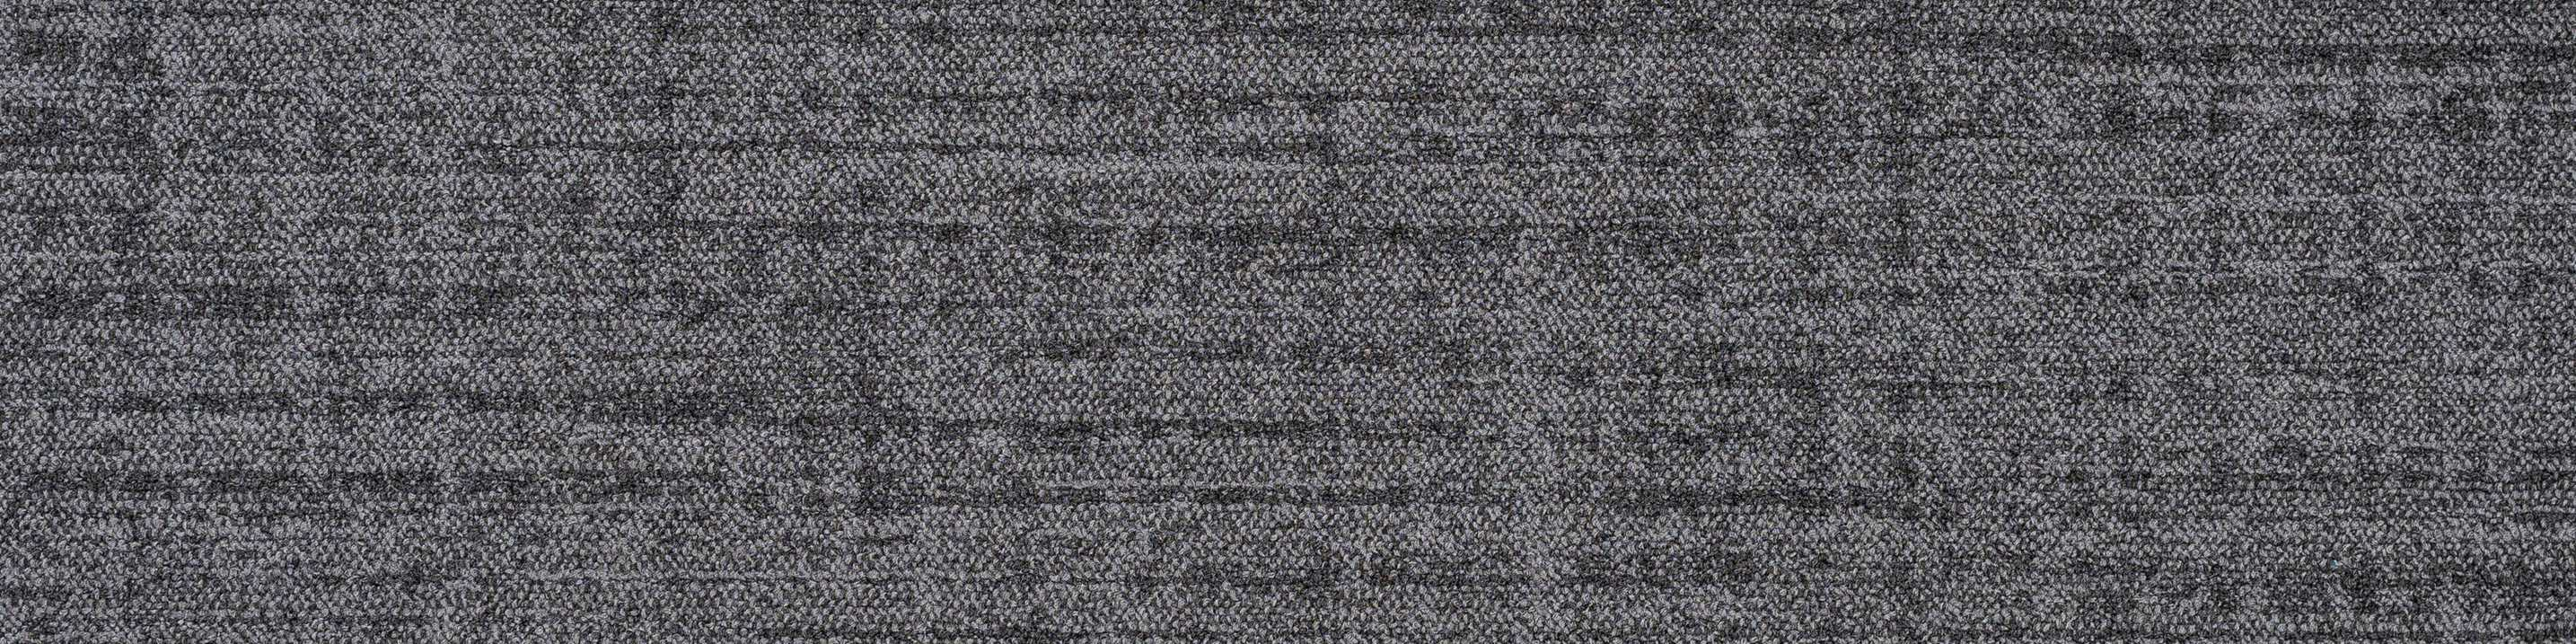 LIN04_DARK_GREY Collection - Premierfloor Lino